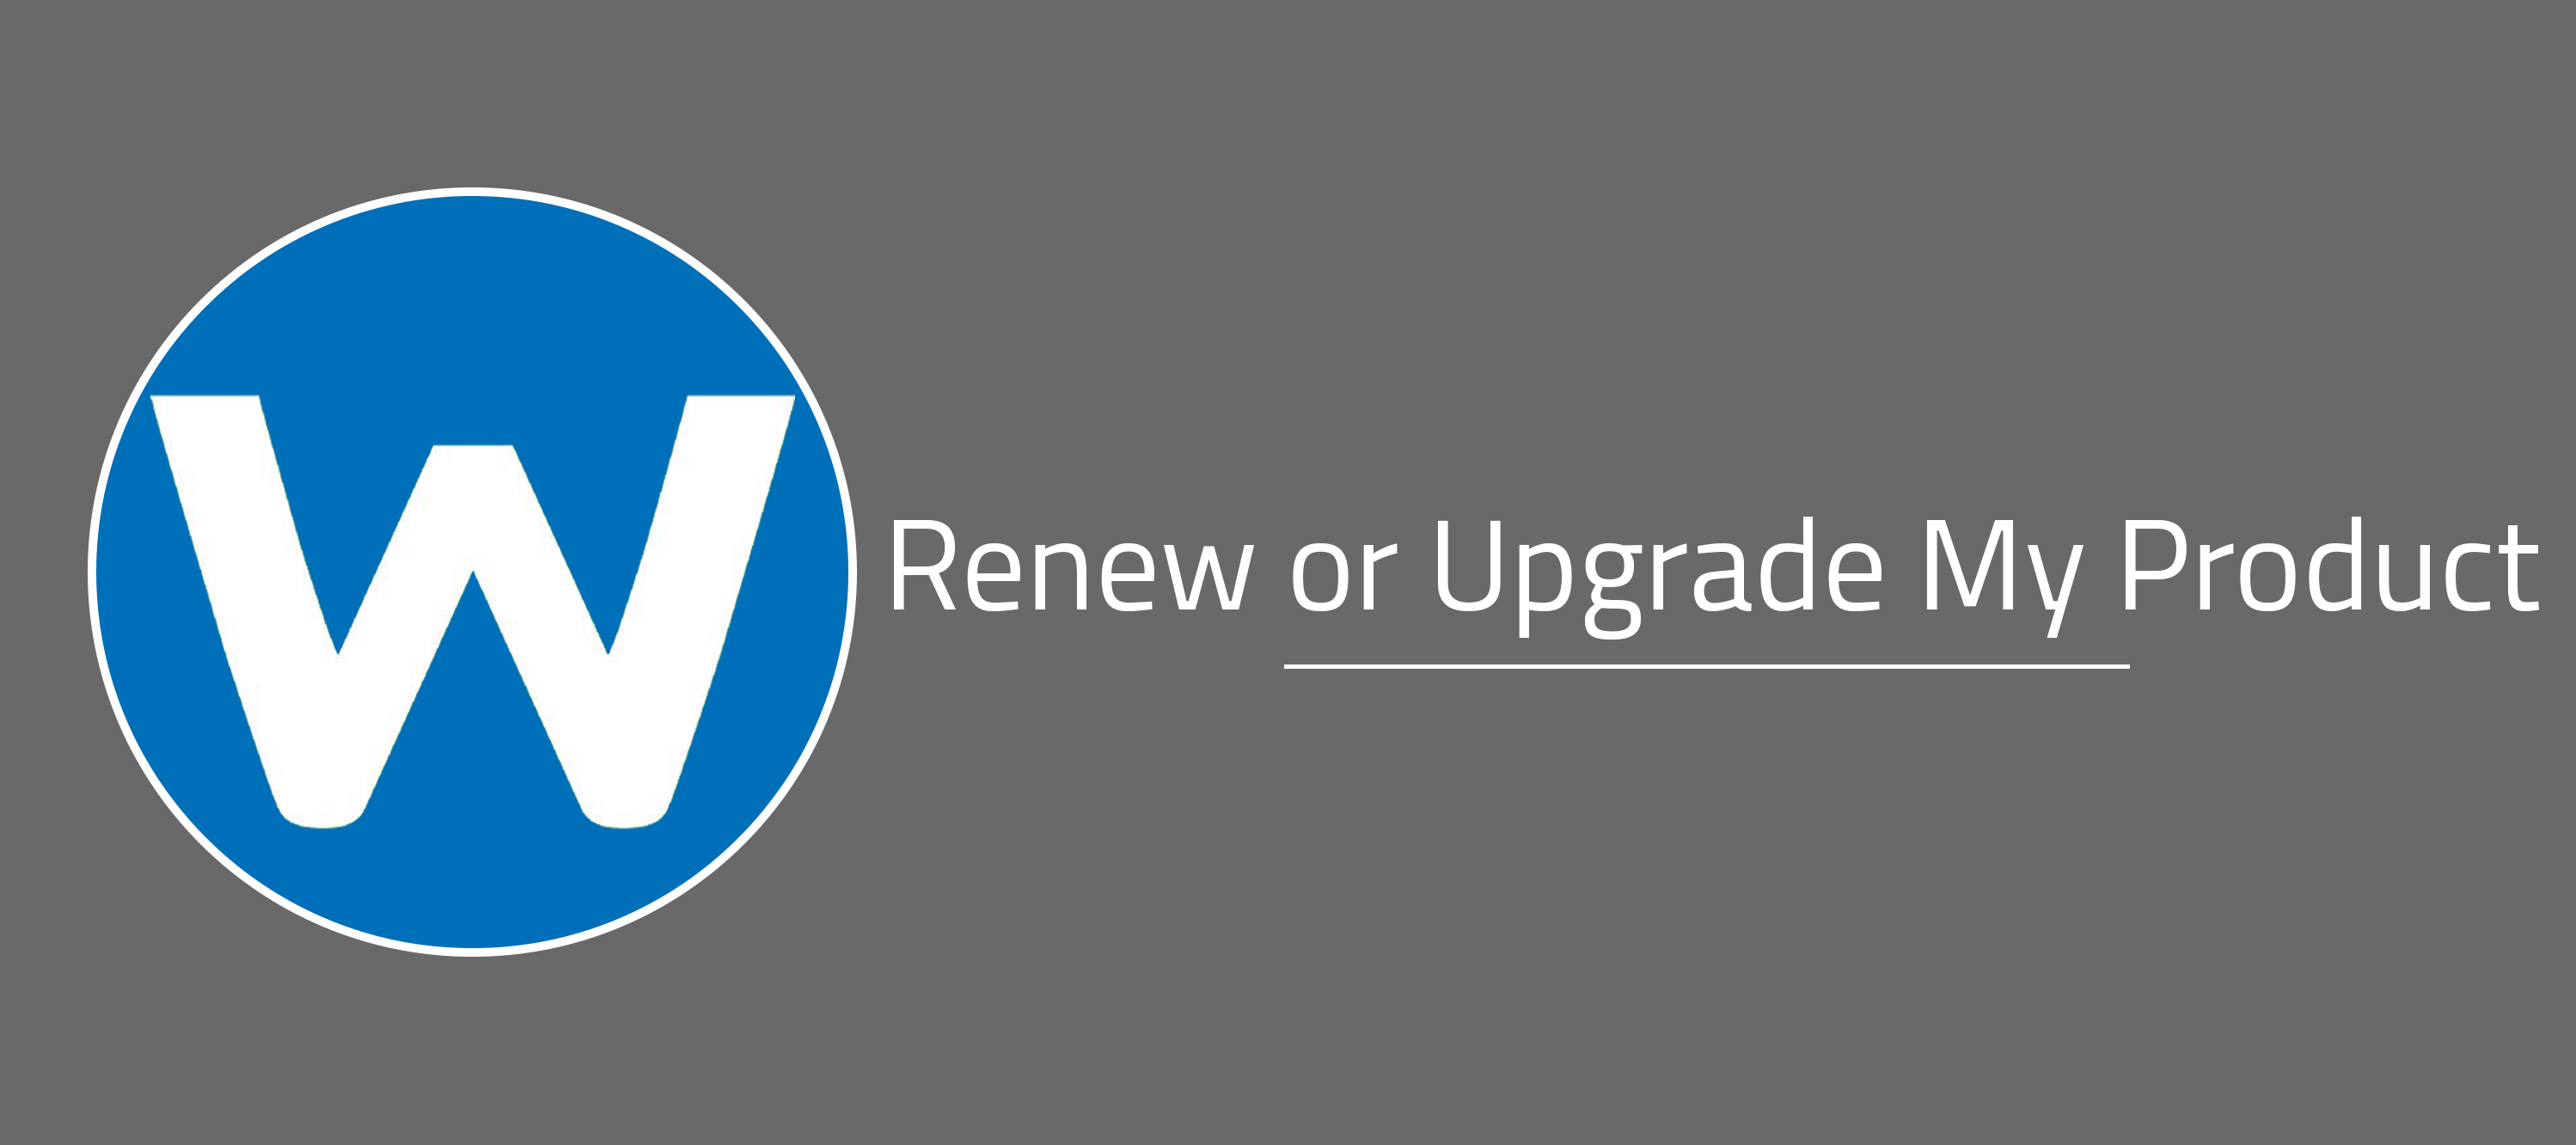 Renew or Upgrade My Product